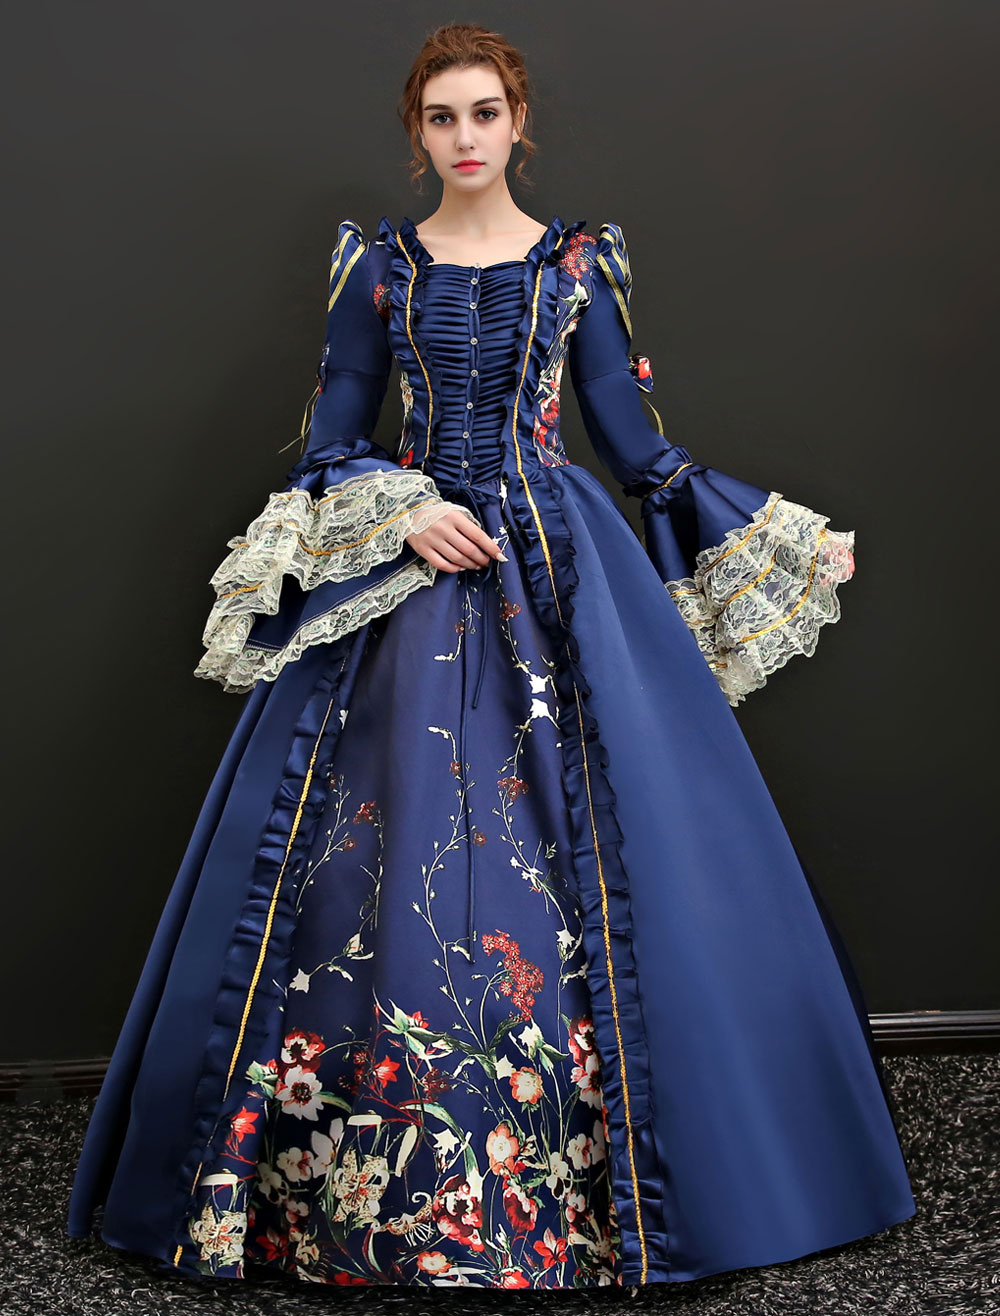 victorian era costume princess sissi women's dark navy